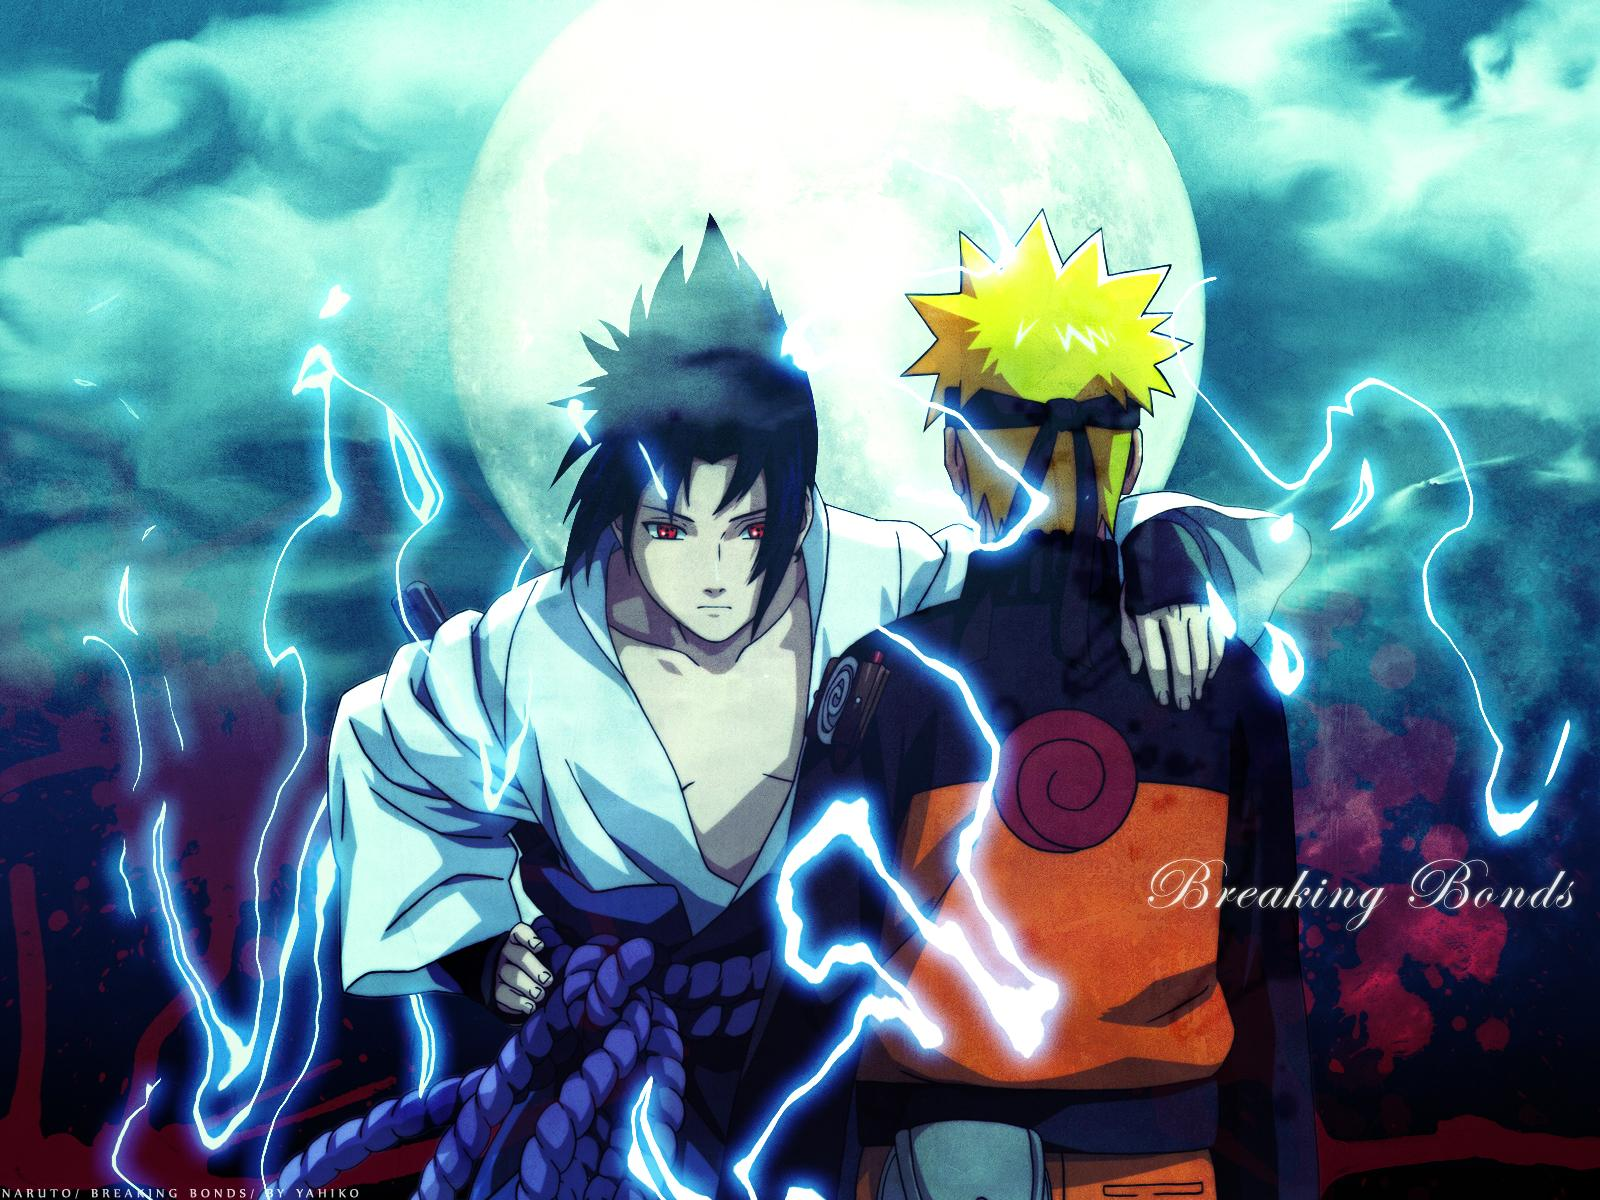 Naruto And Sasuke Wallpapers - WallpaperSafari